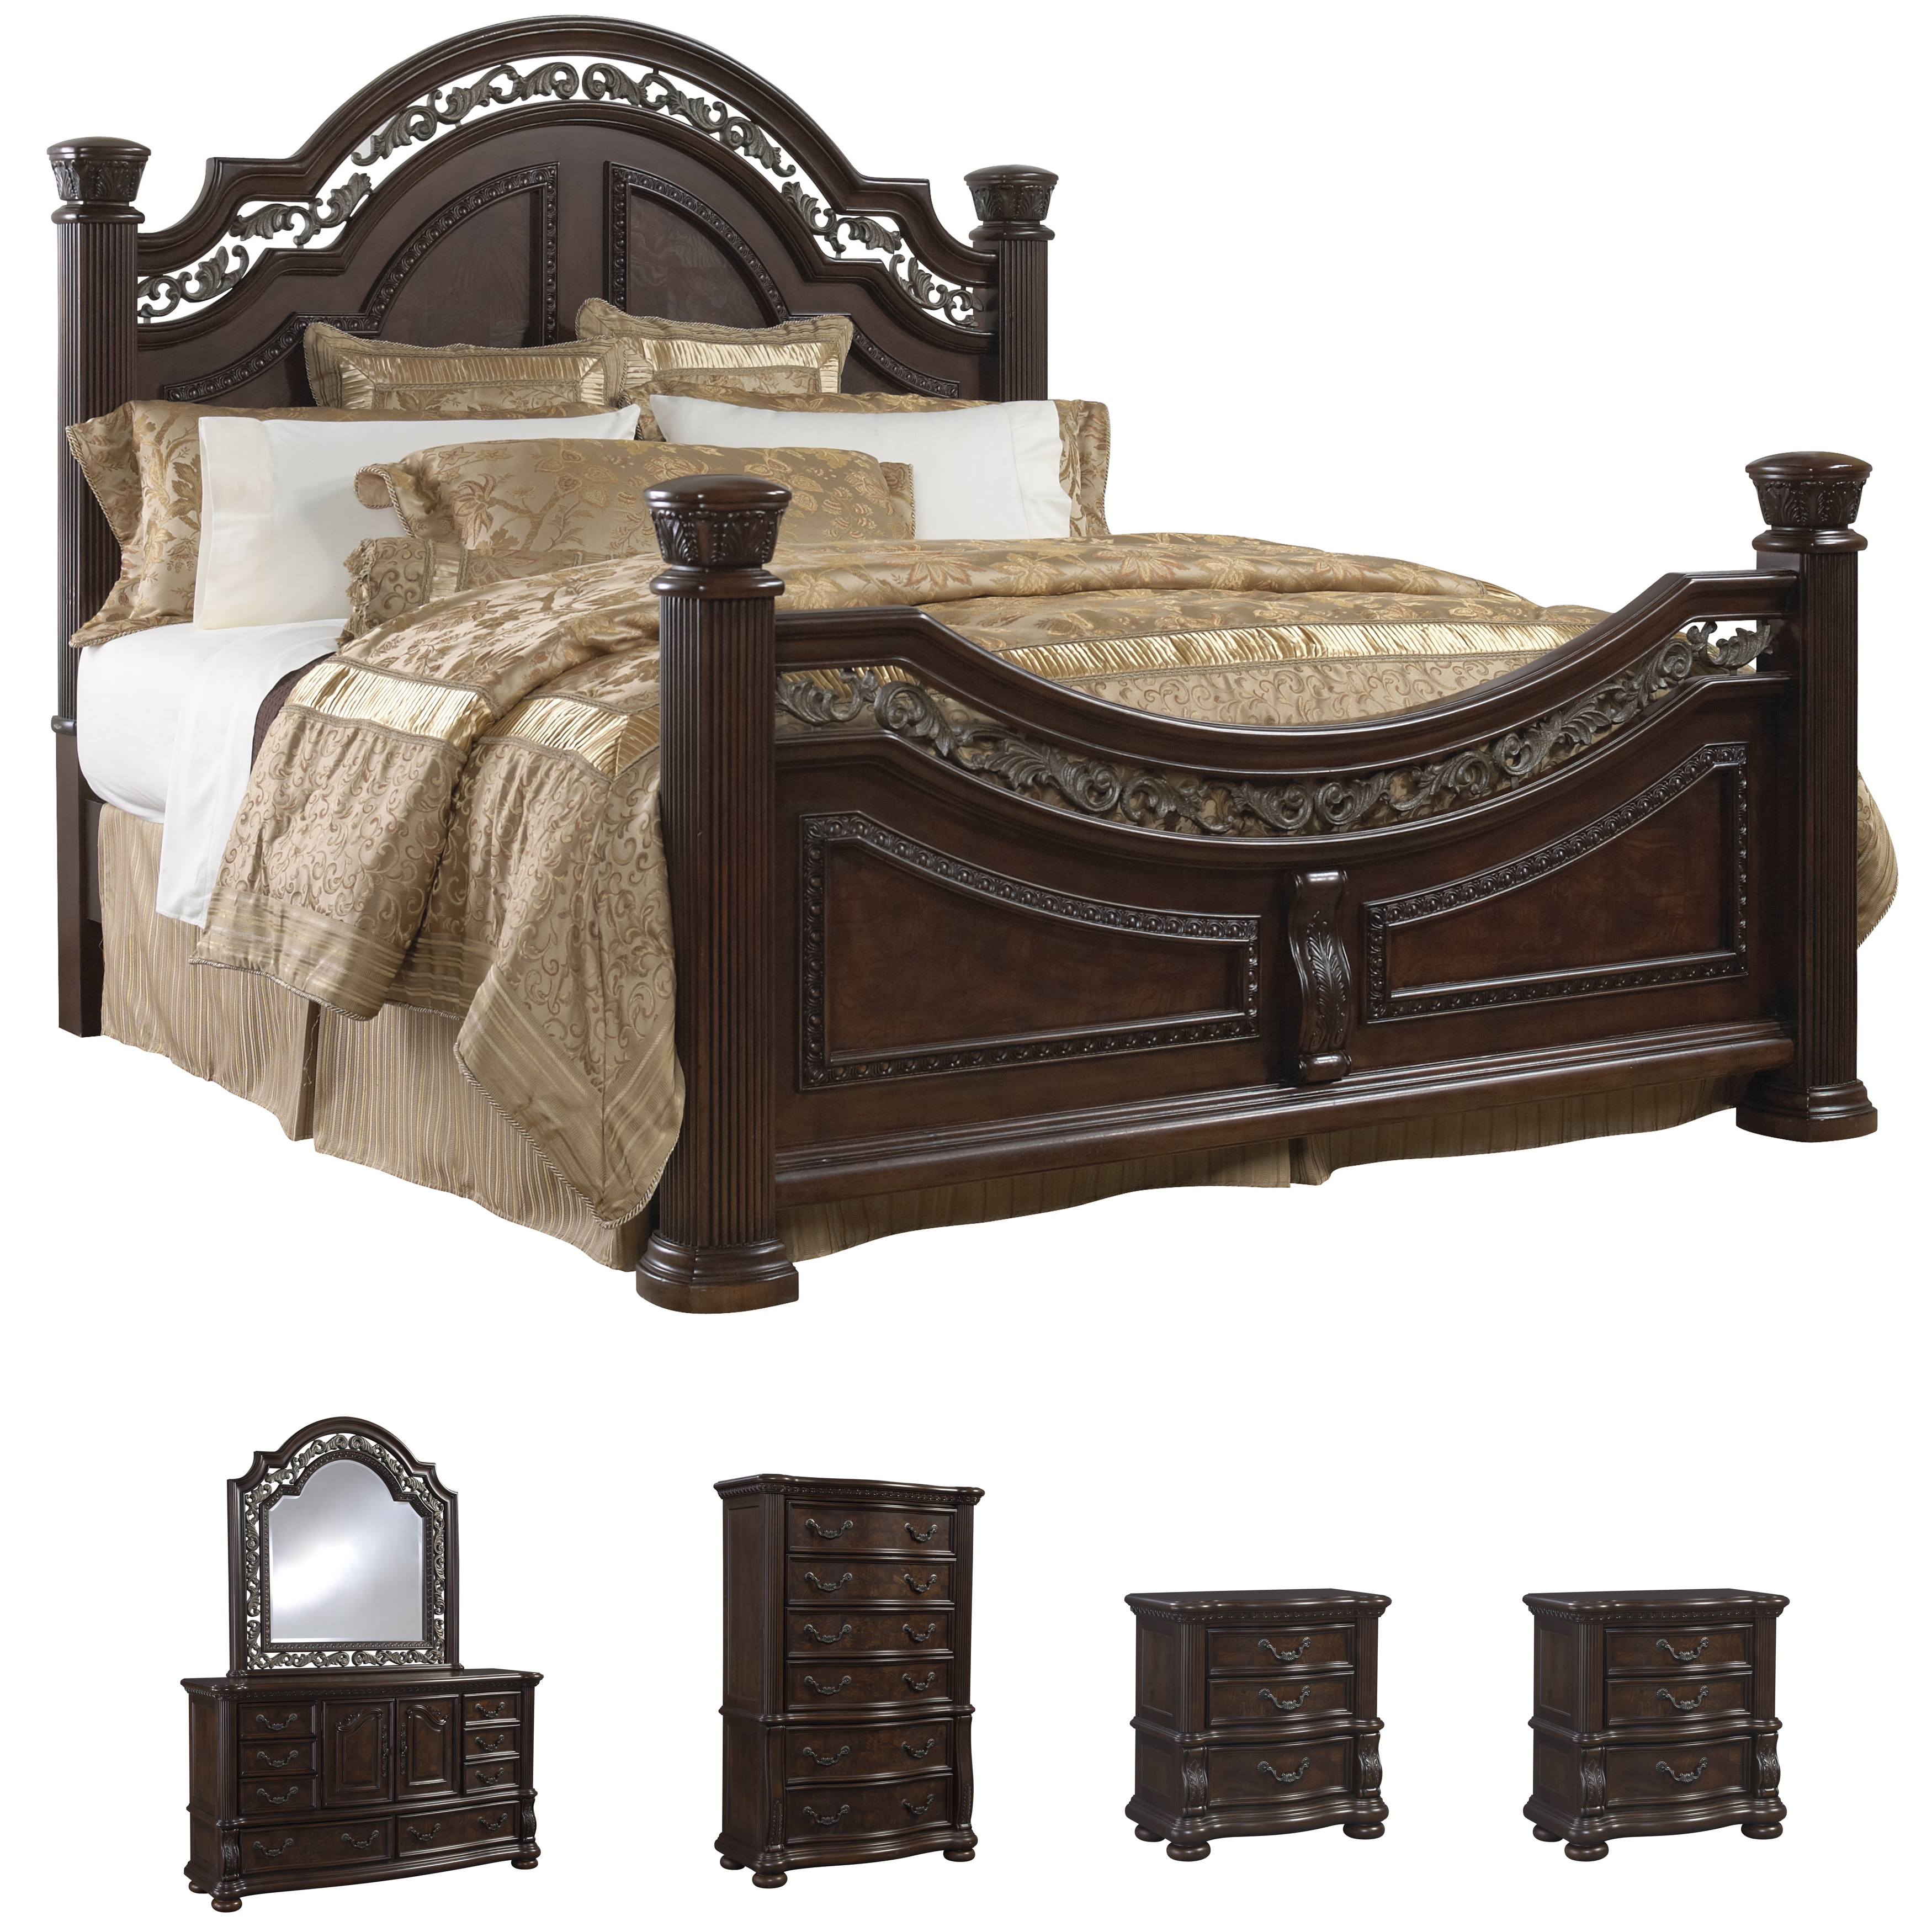 Sofaweb.com Tuscany 6-piece Mocha Finish King-size Bedroom Set ...